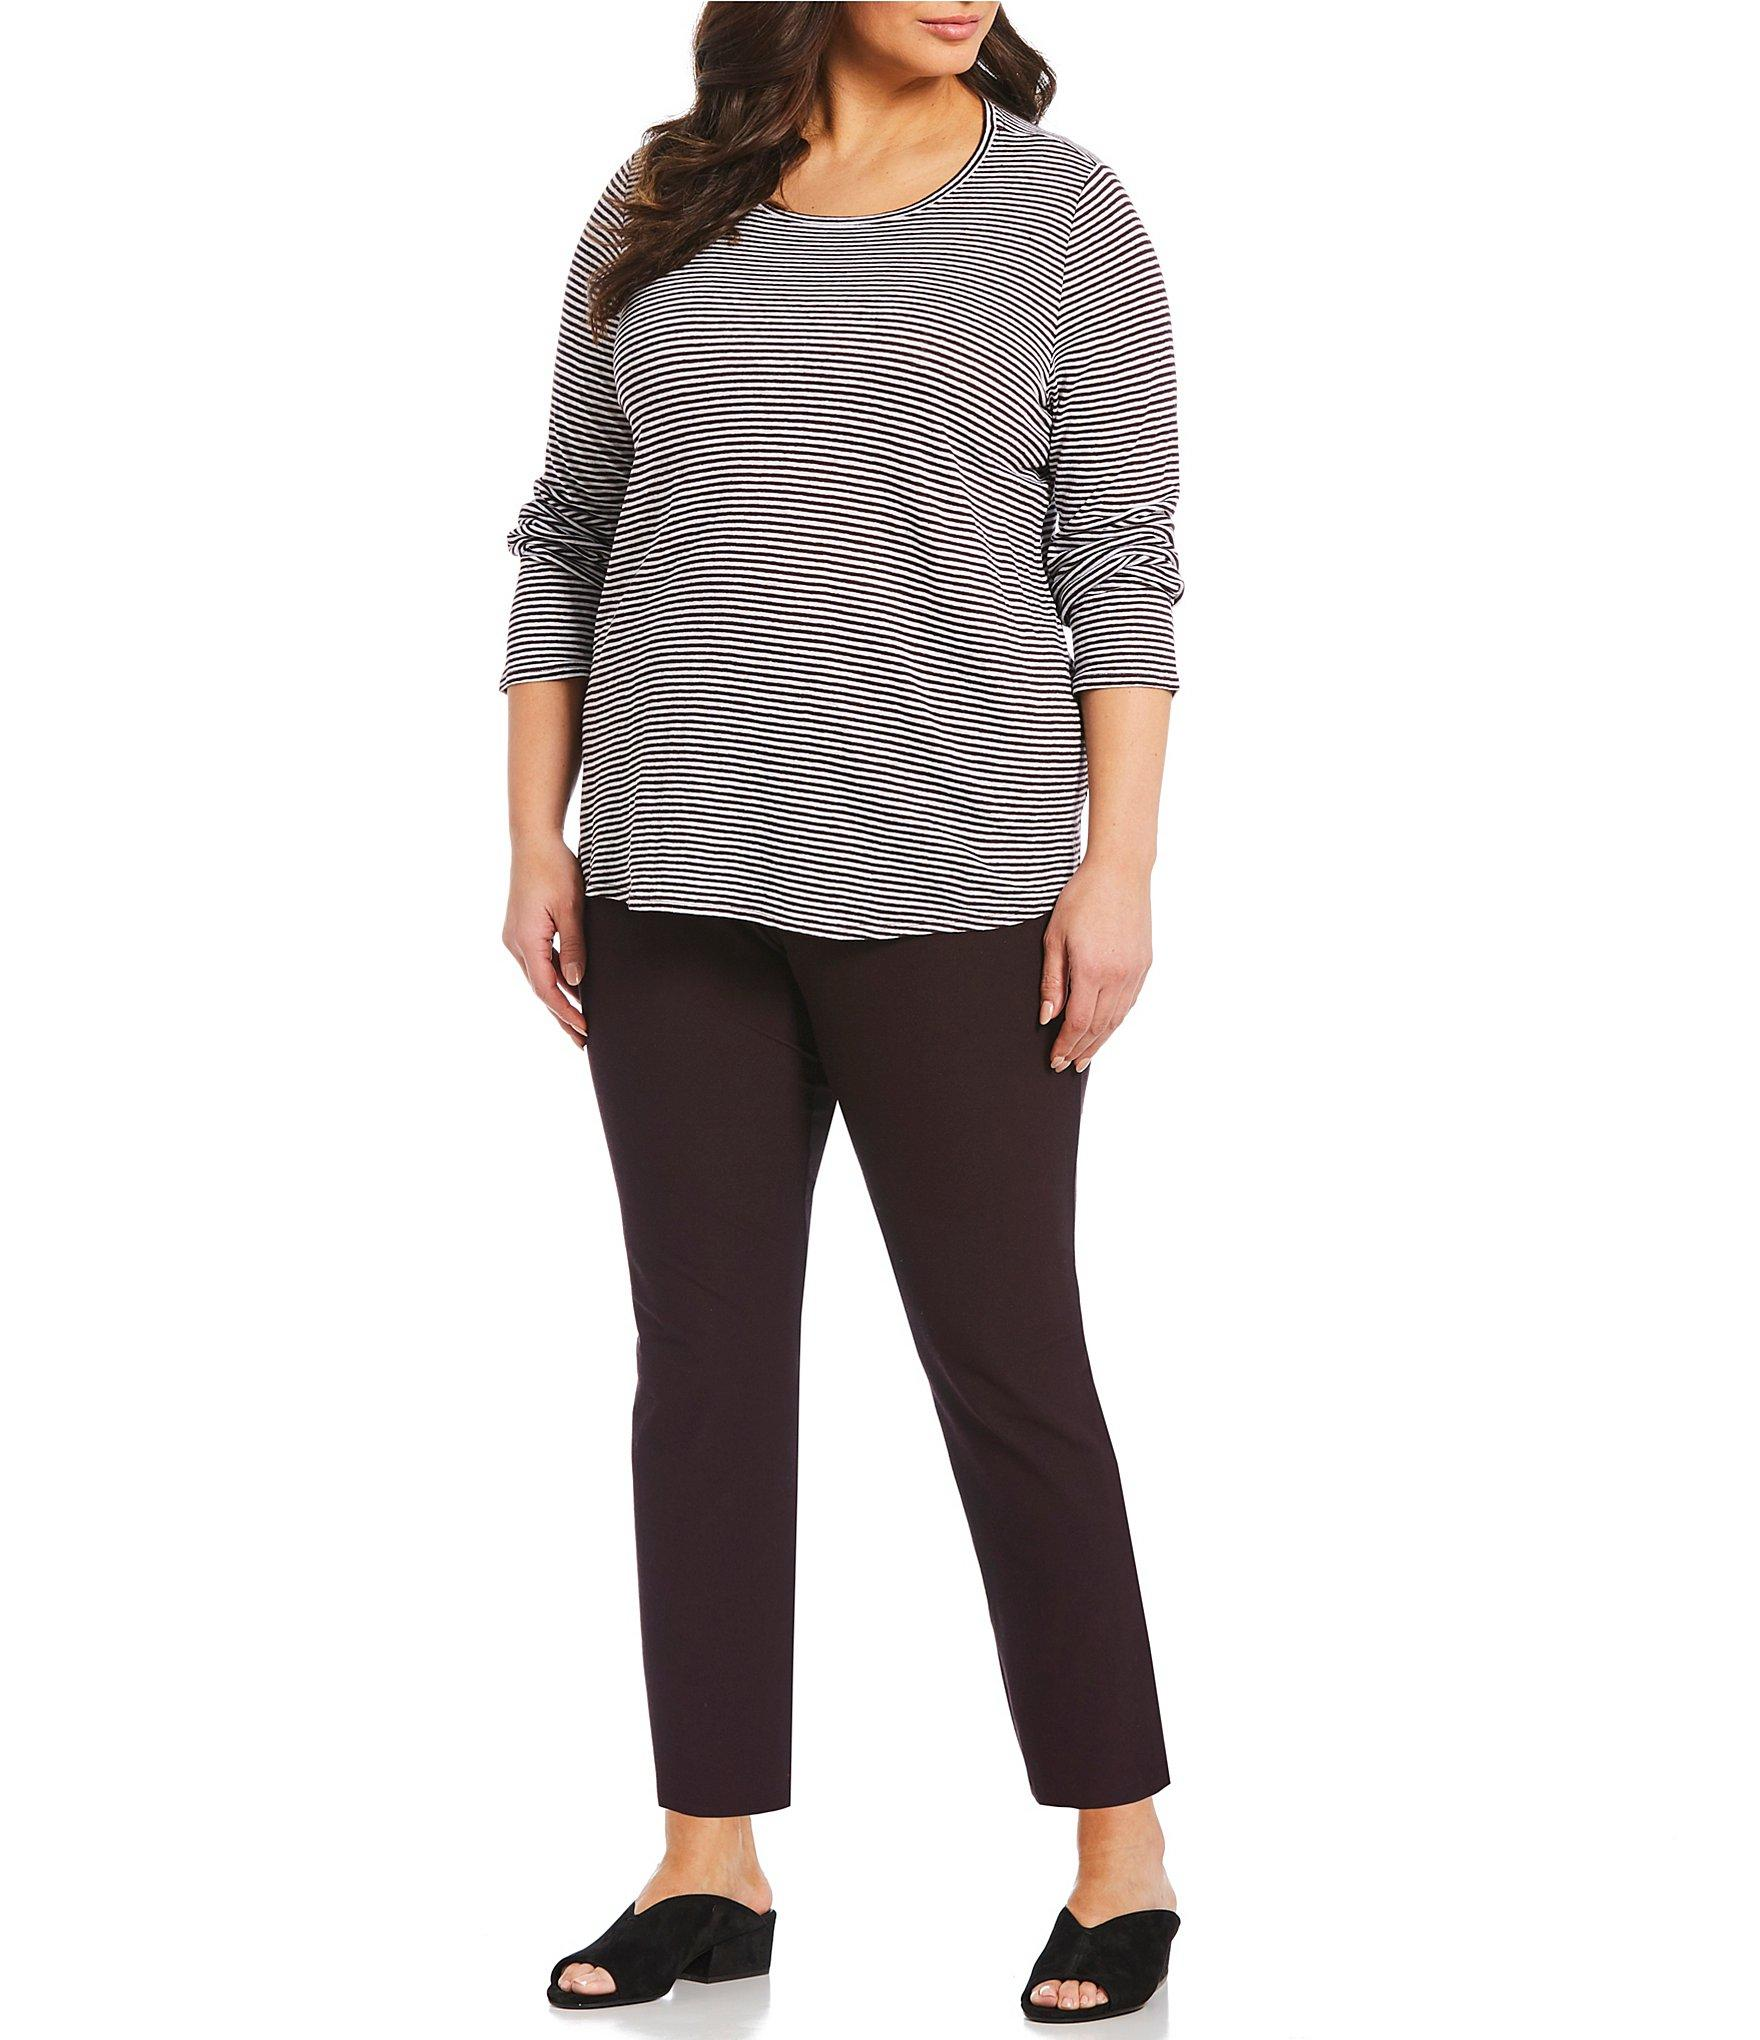 00b7c2b4a Eileen Fisher - Gray Plus Size Striped Long Sleeve Tee - Lyst. View  fullscreen